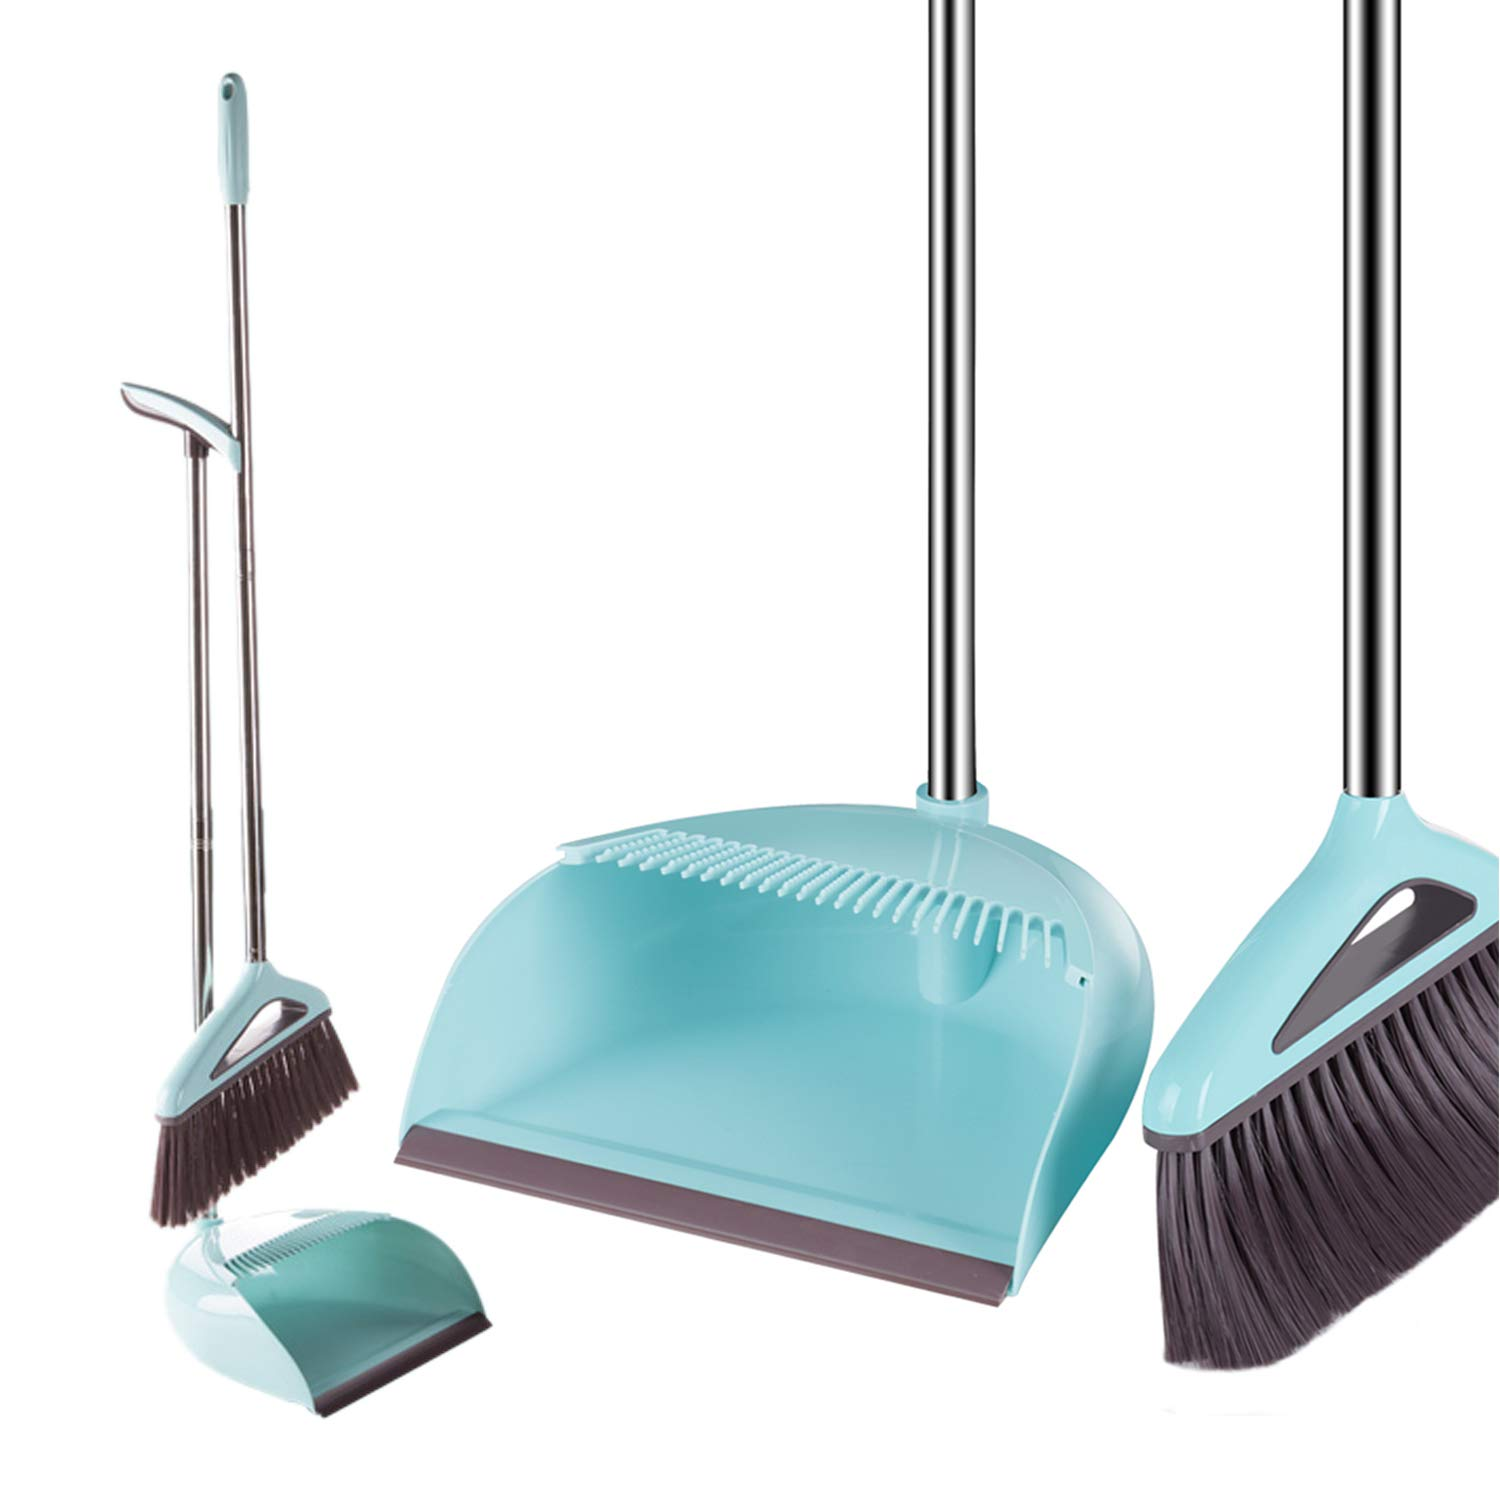 Topgalaxy.Z Broom and Dustpan Set - Angle Broom for Kitchen, Home and Lobby Broom and Dustpan Combo - Premium Brush and Dust Cleaner (Blue)